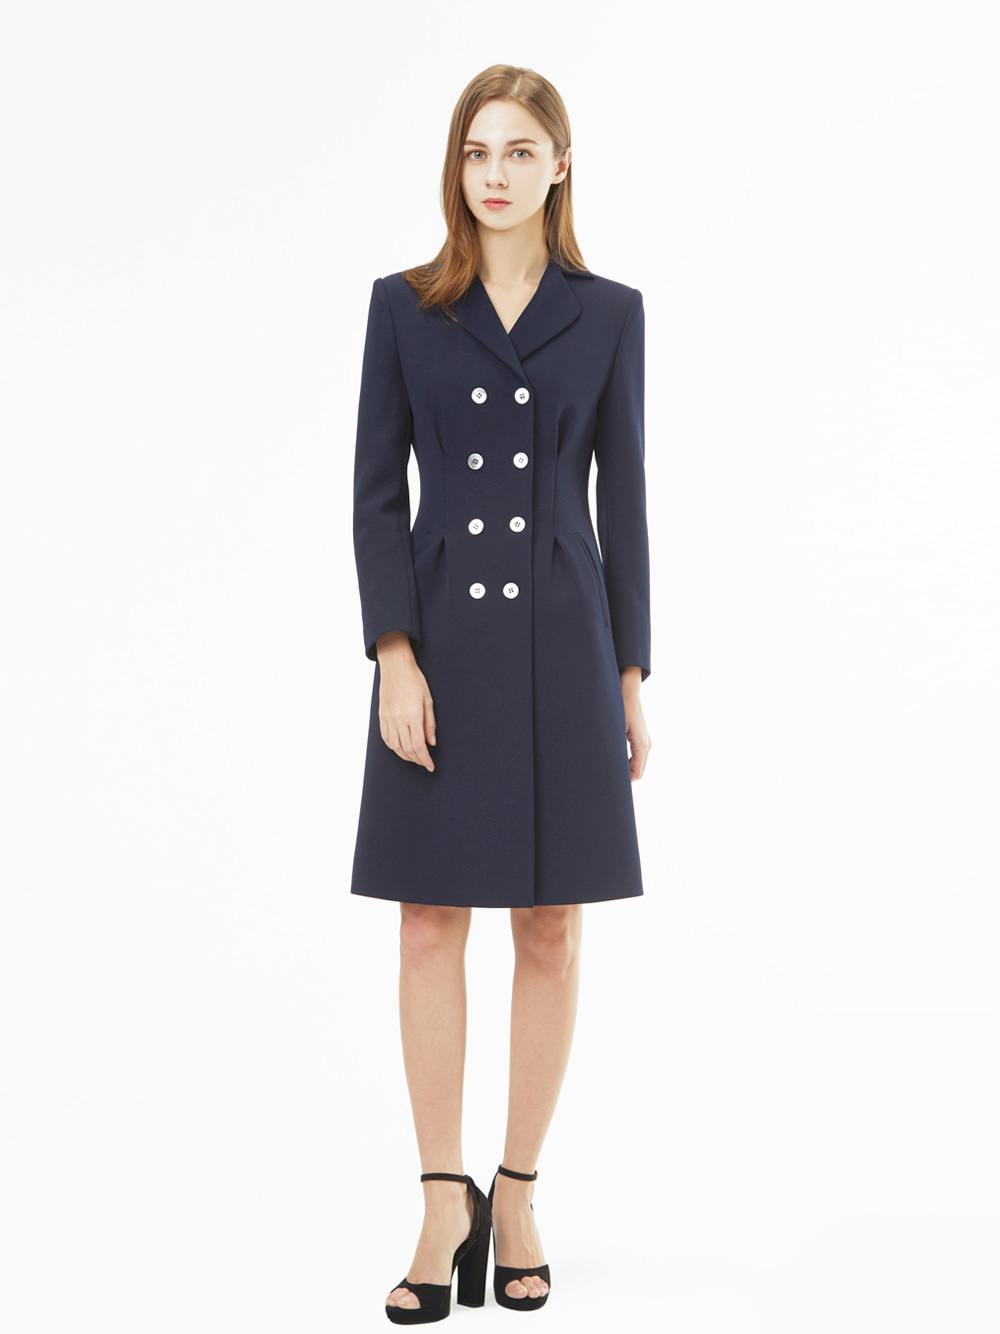 RTW The Bar Dress & Coat (네이비)